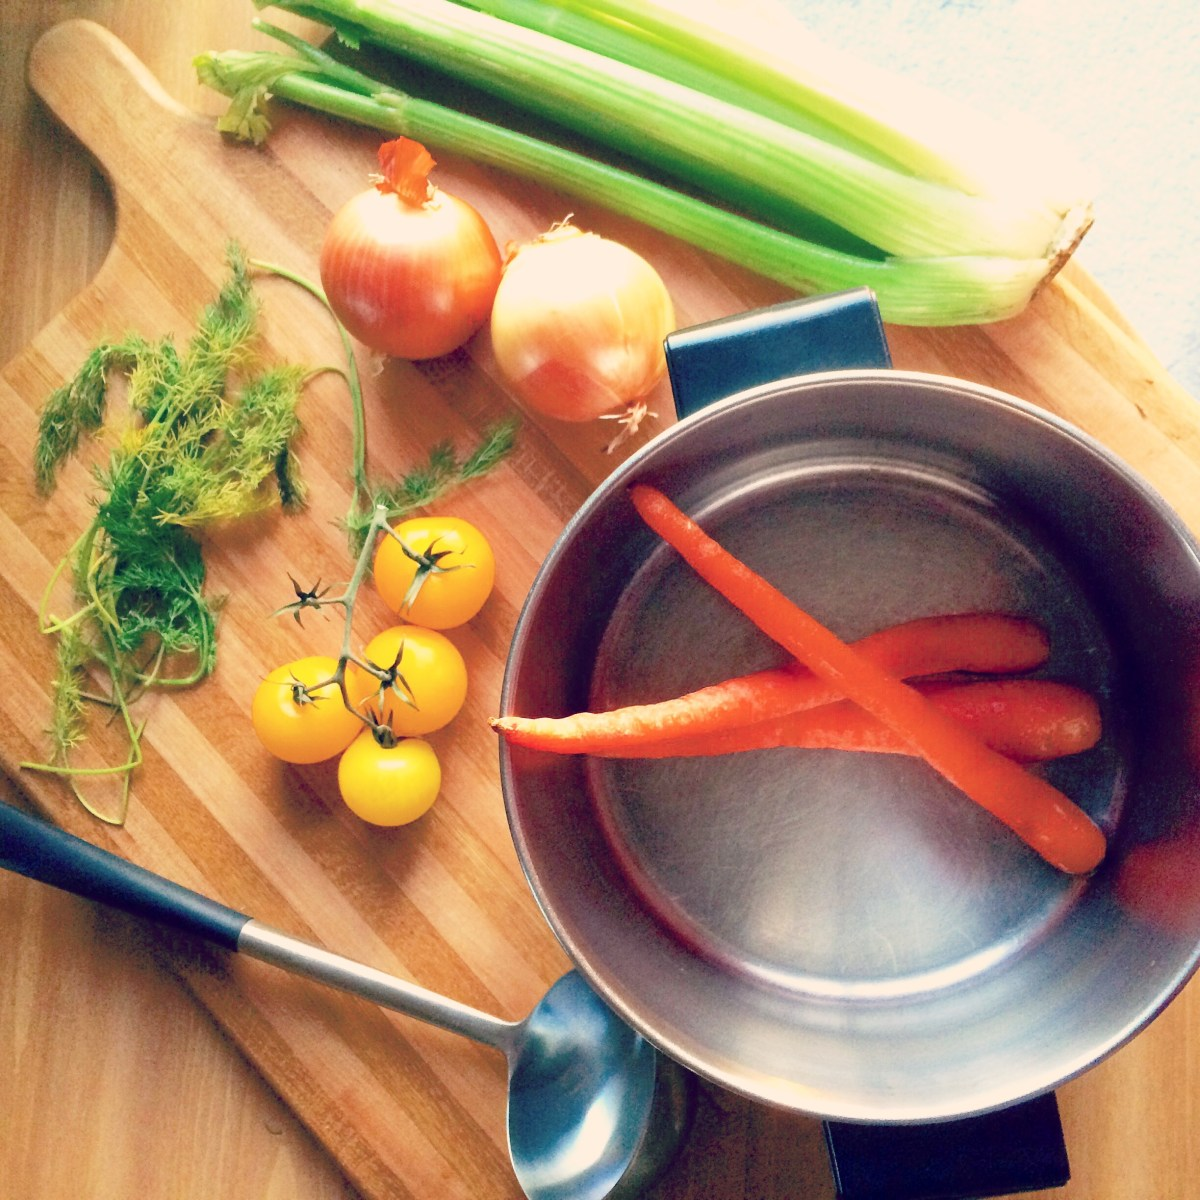 Cooking 101: Homemade Vegetable Broth